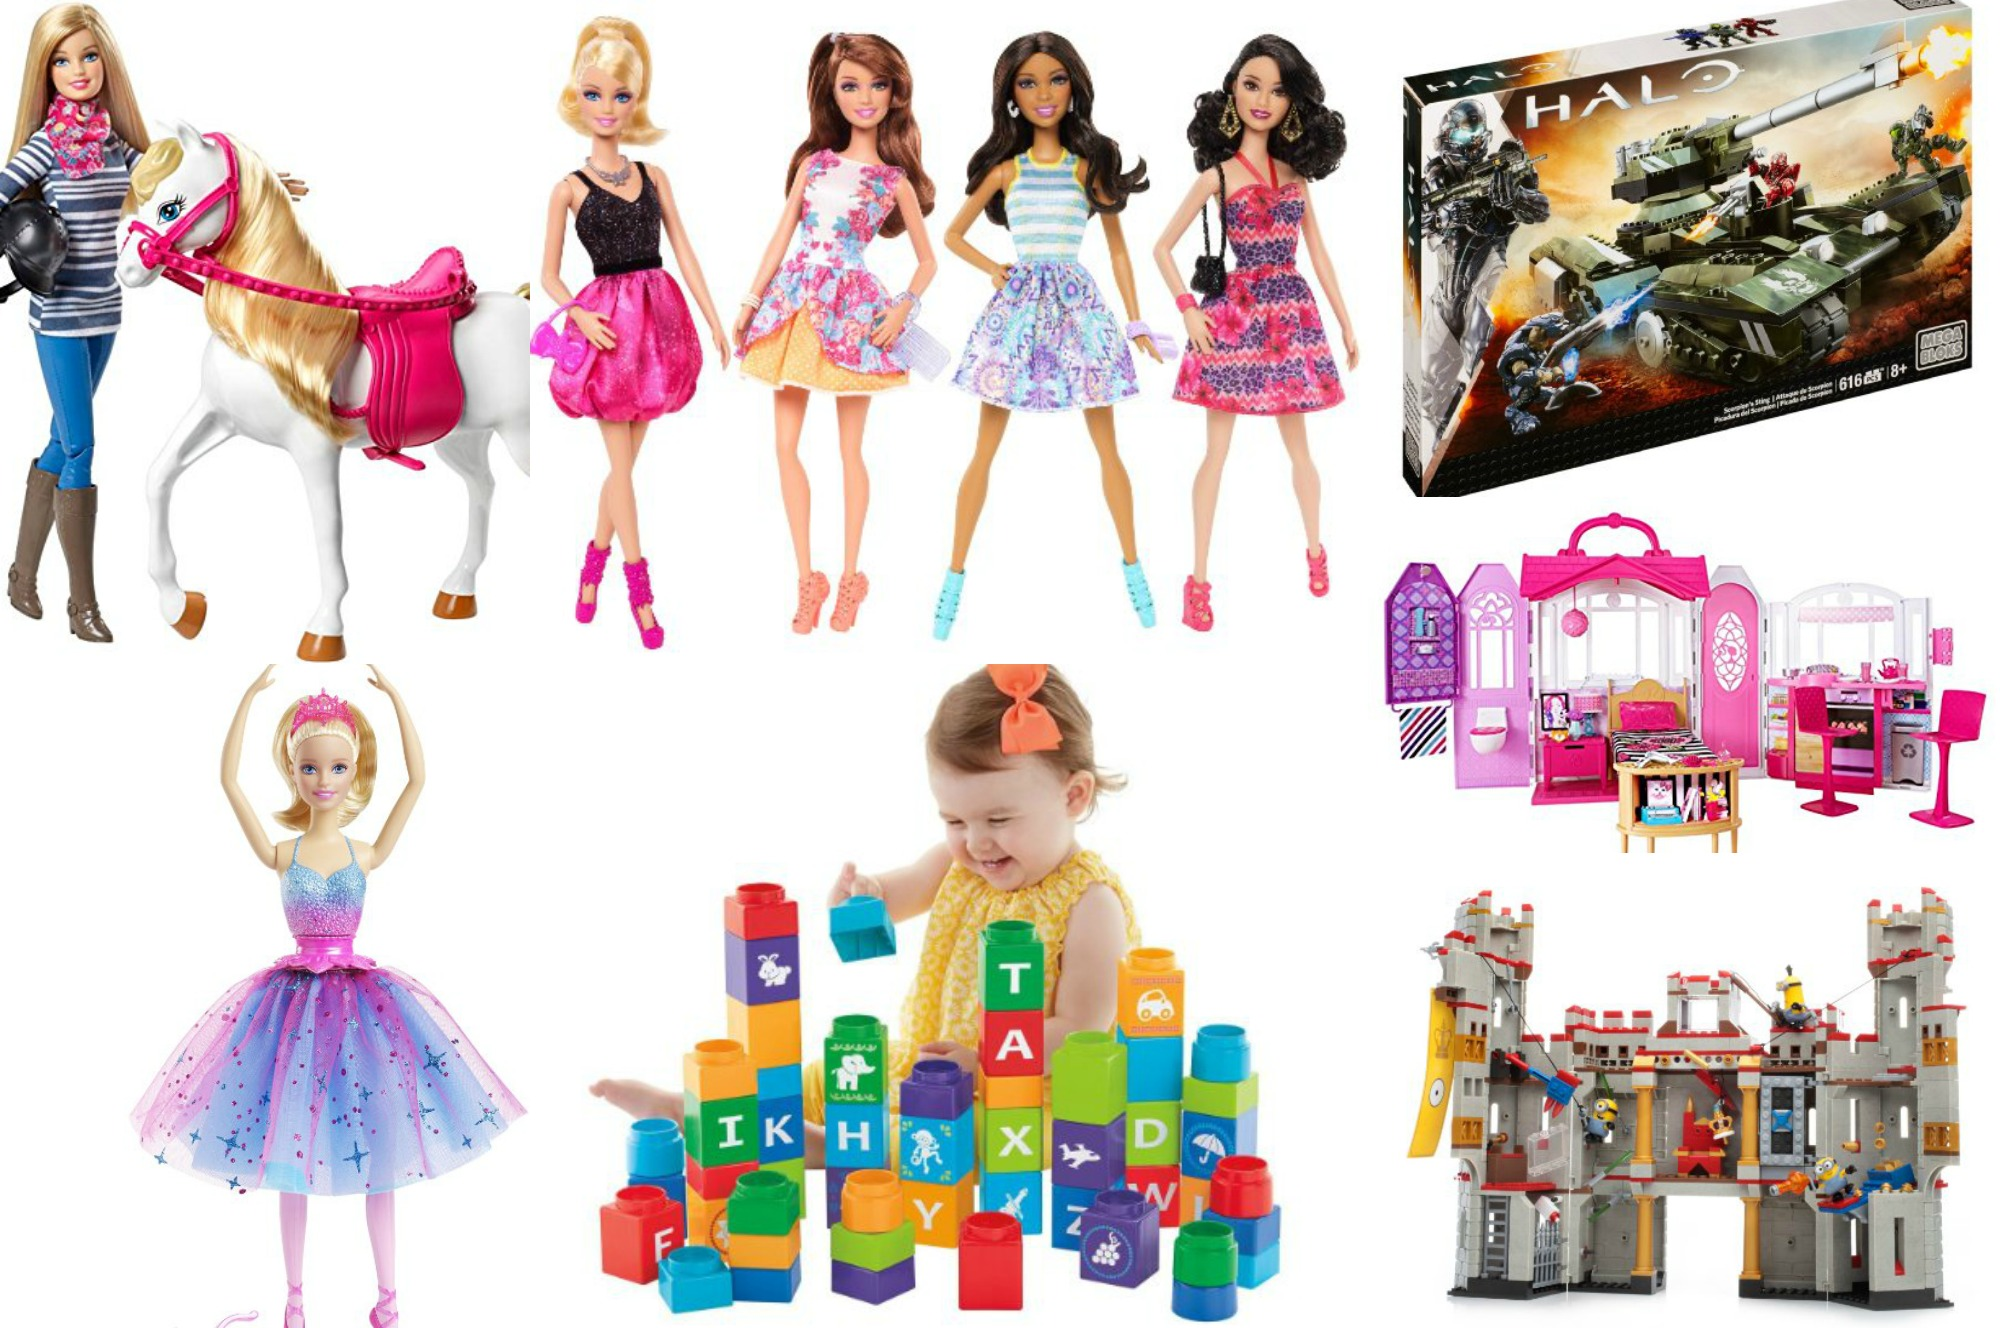 *HOT* 50% OFF TONS of Toys from Mattel AND Fisher Price!!!